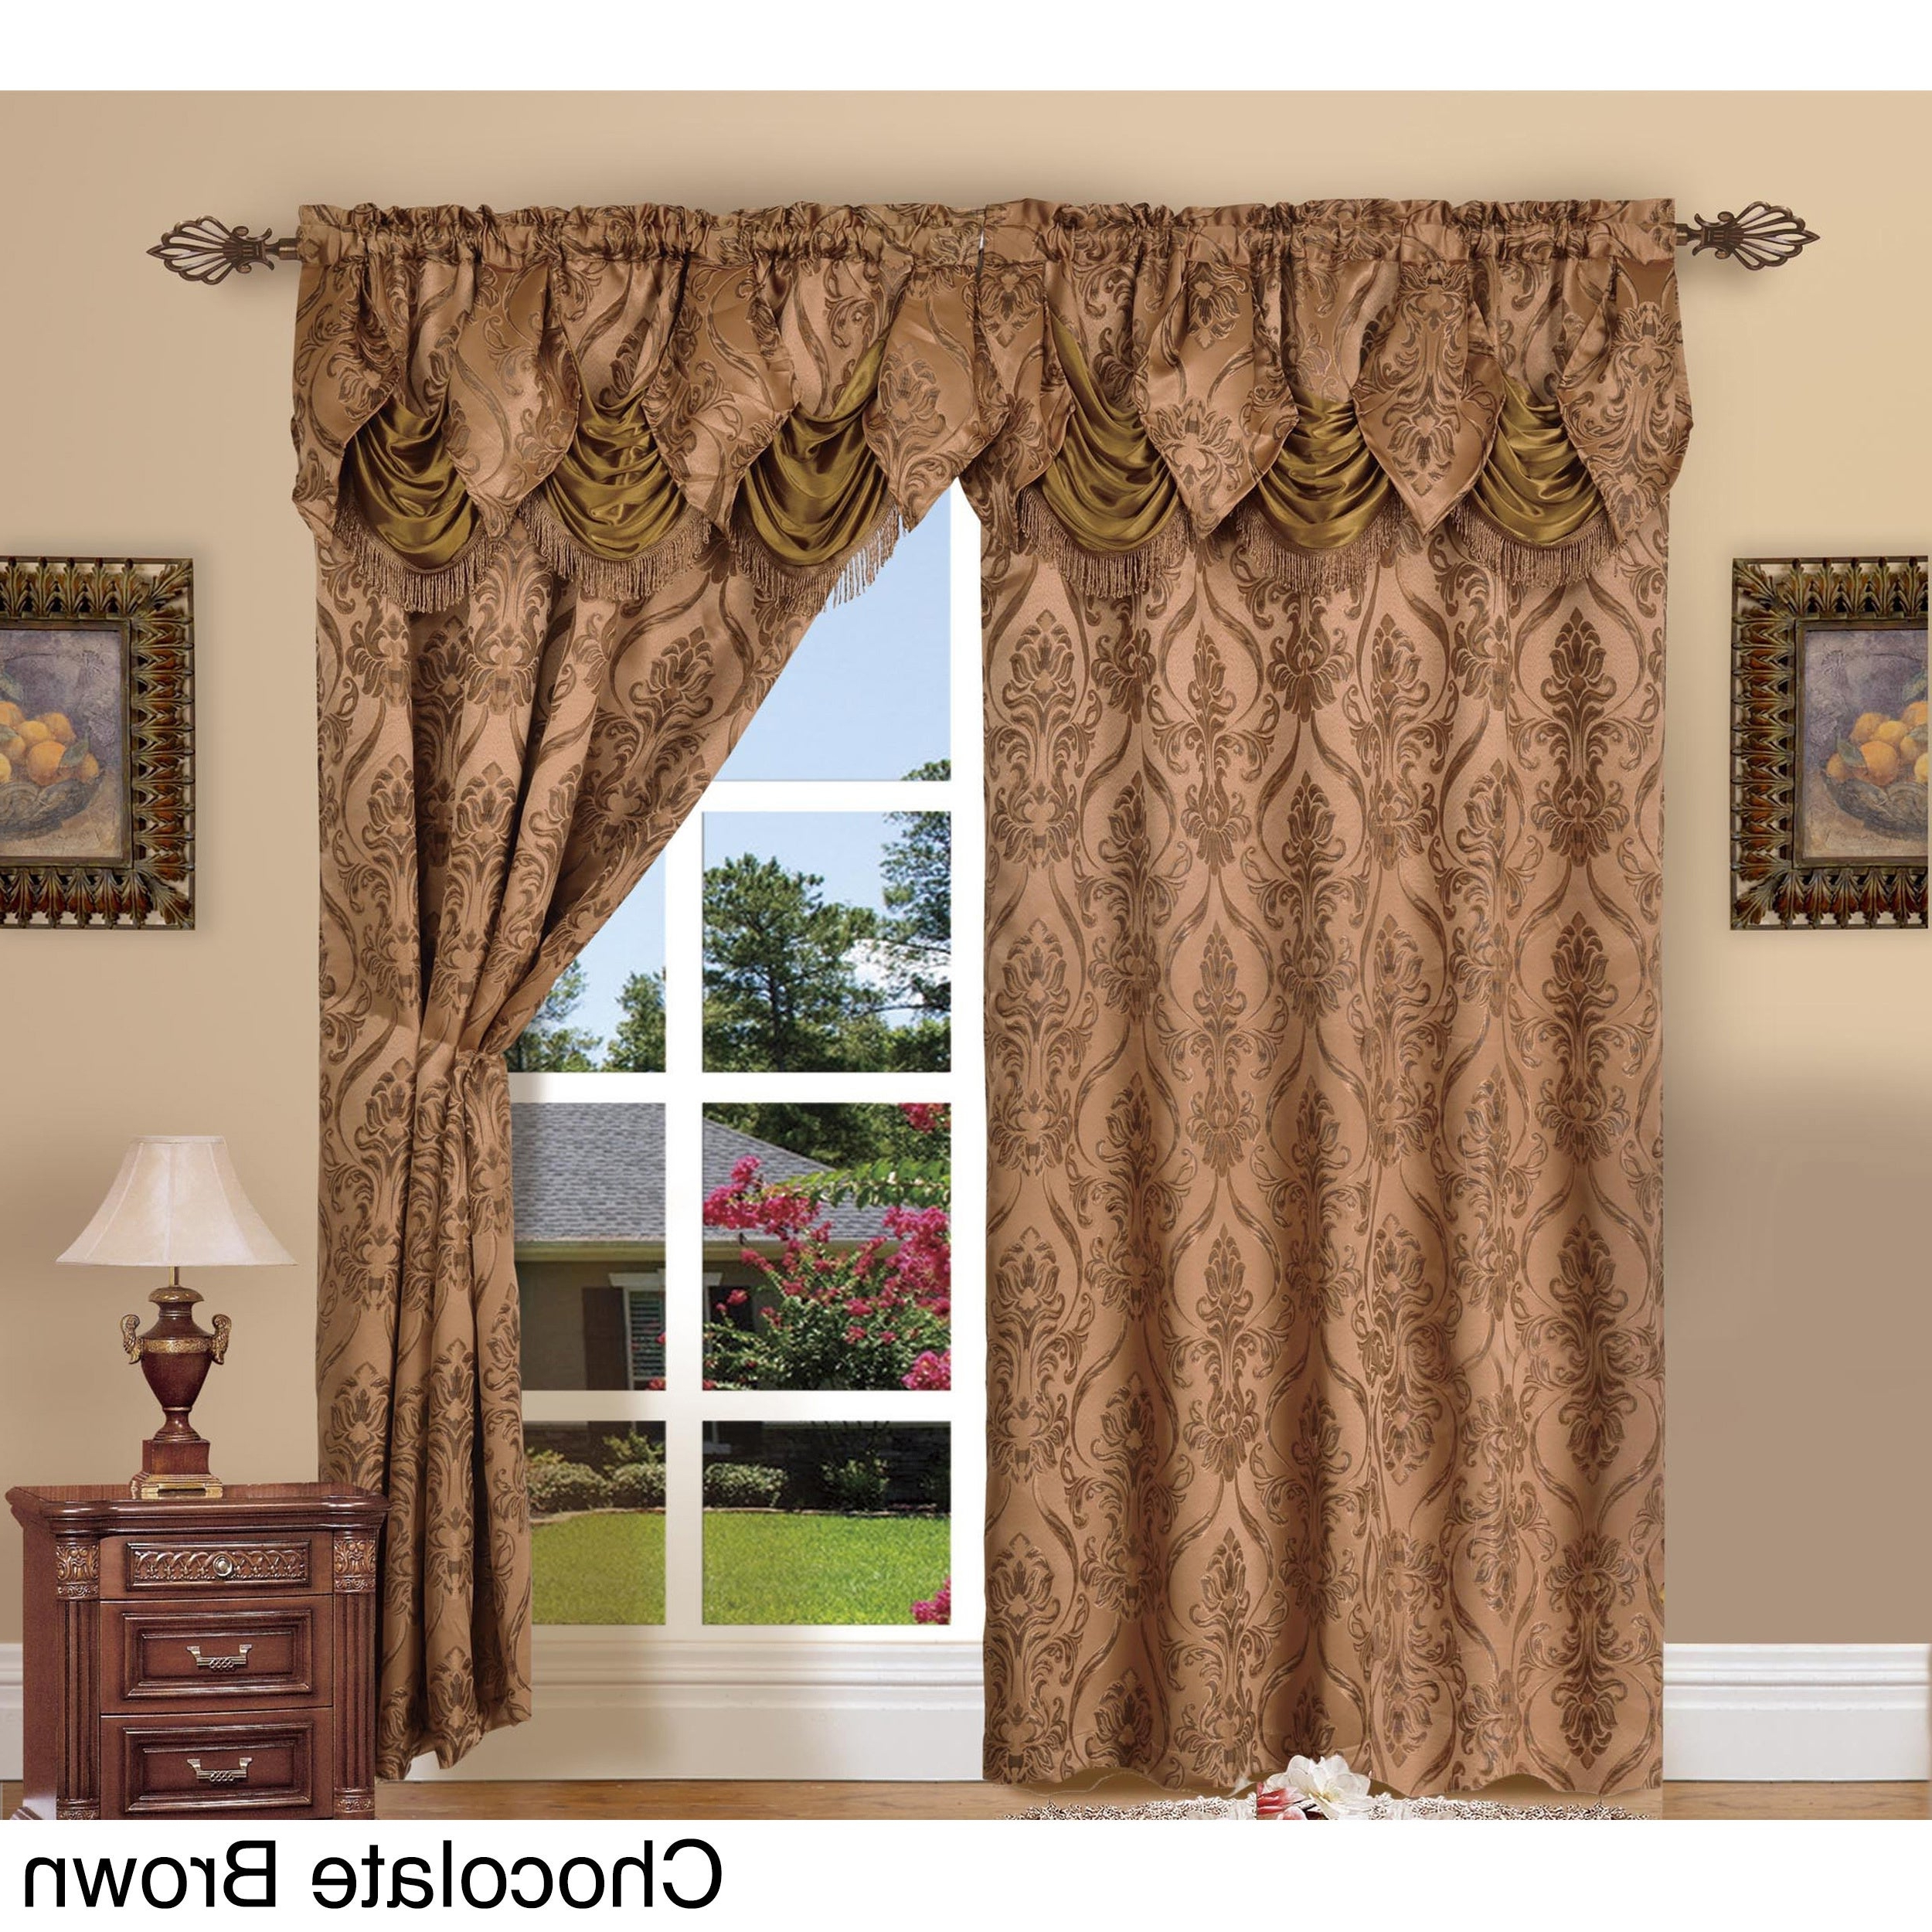 Most Recently Released Elegant Comfort Luxury Penelopie Jacquard 84 Inch Length Window Curtain  Panel Pair With Regard To Elegant Comfort Luxury Penelopie Jacquard Window Curtain Panel Pairs (Gallery 2 of 20)